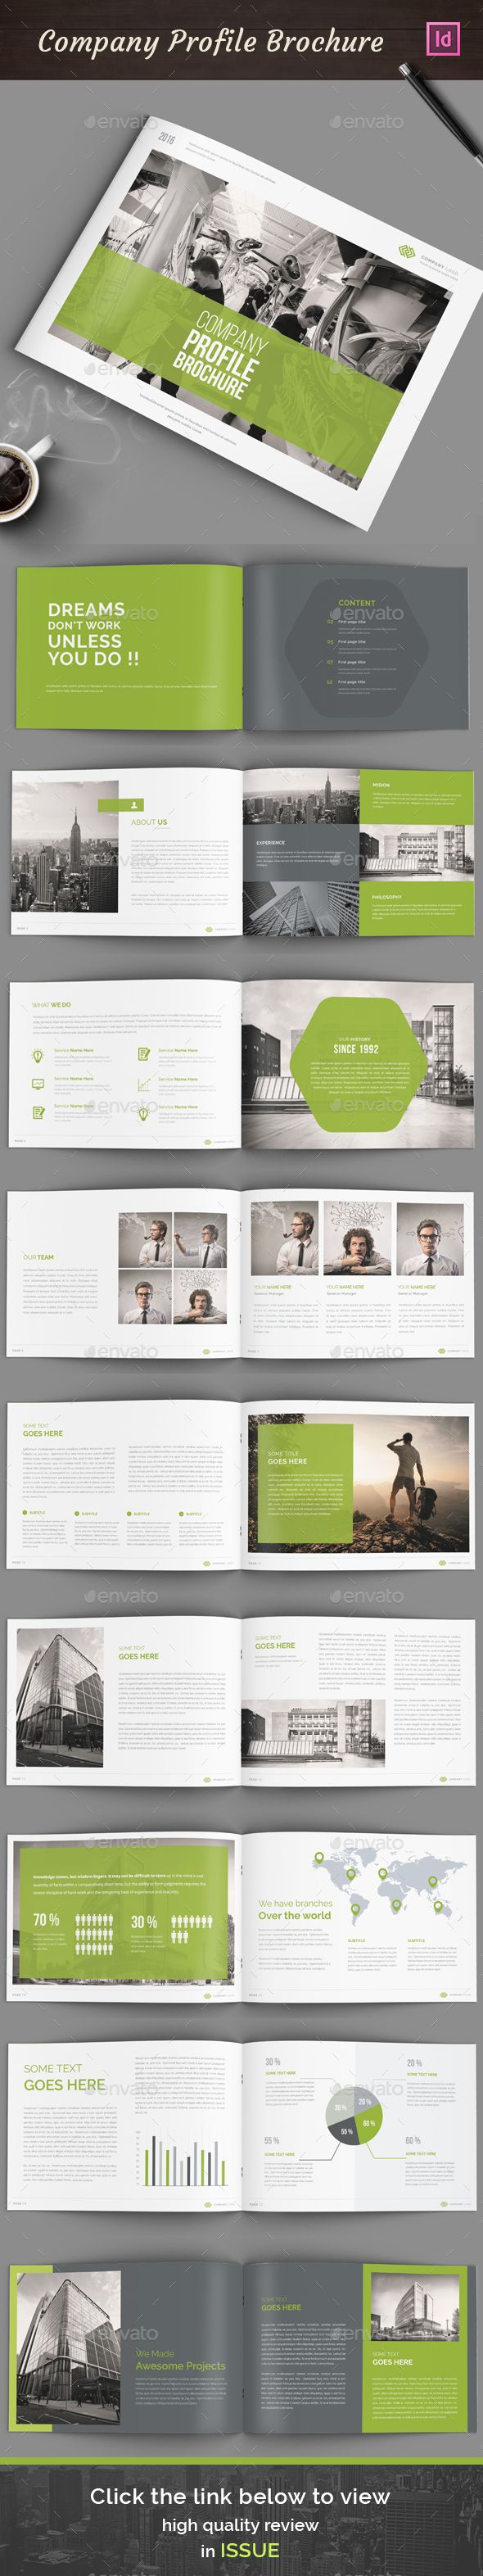 Annual Report Brochure Template InDesign INDD. Download here: http://graphicriver.net/item/annual-report-brochure-05/16006417?ref=ksioks